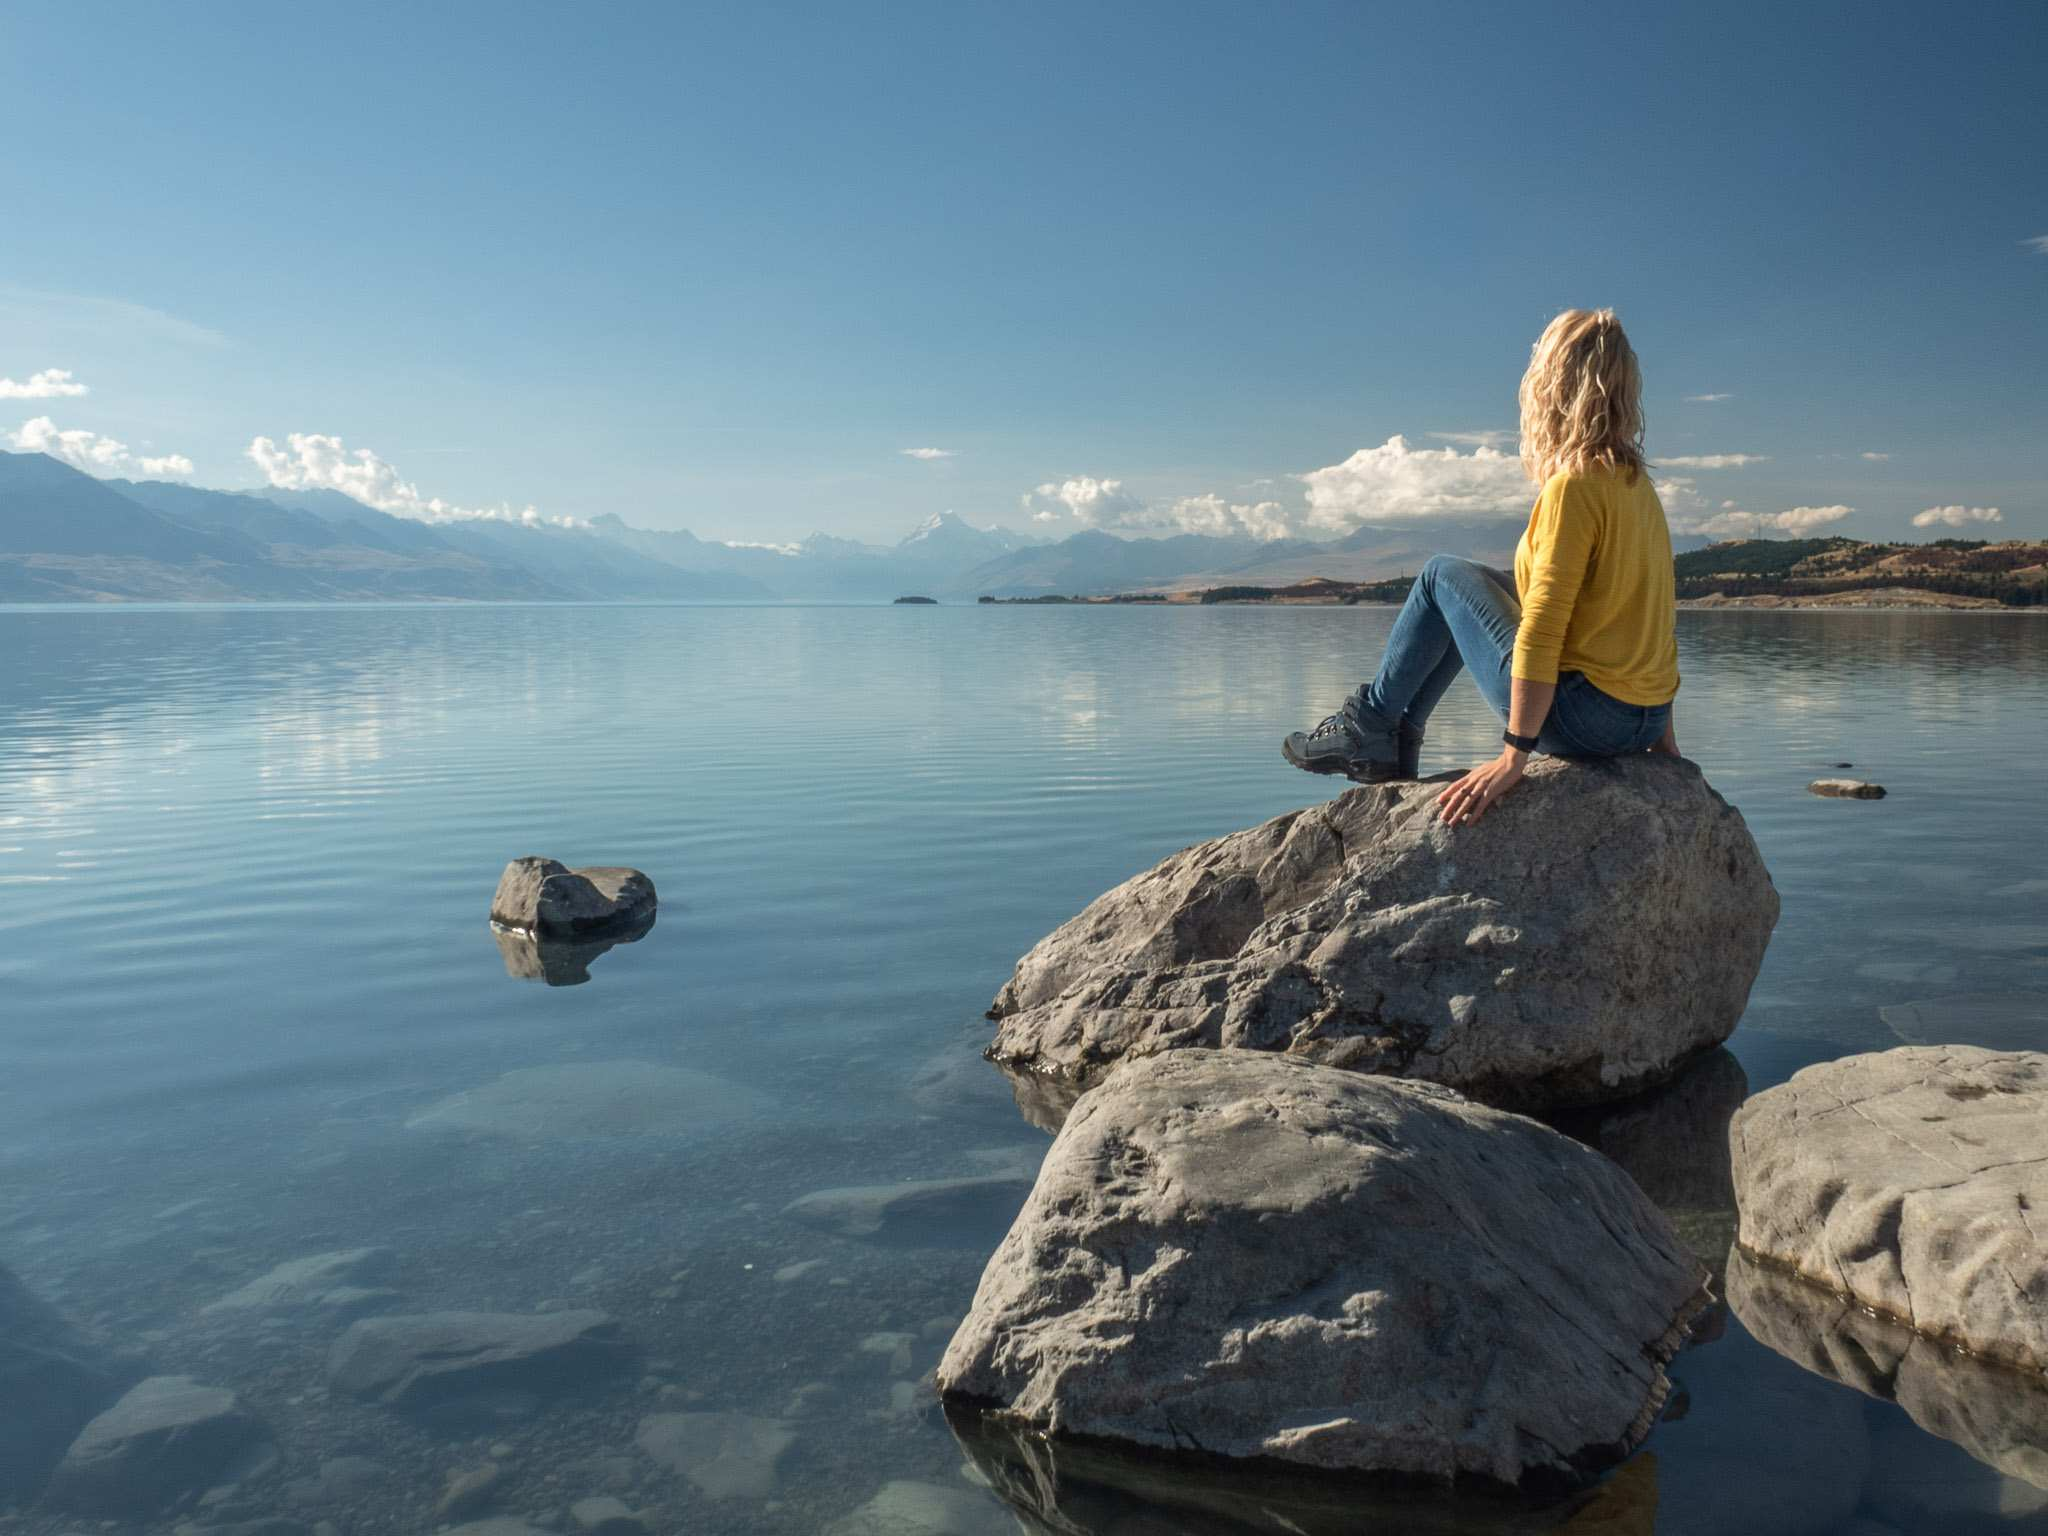 blonde girl in yellow shirt and jeans perches on rock in water overlooking mountains in the distance